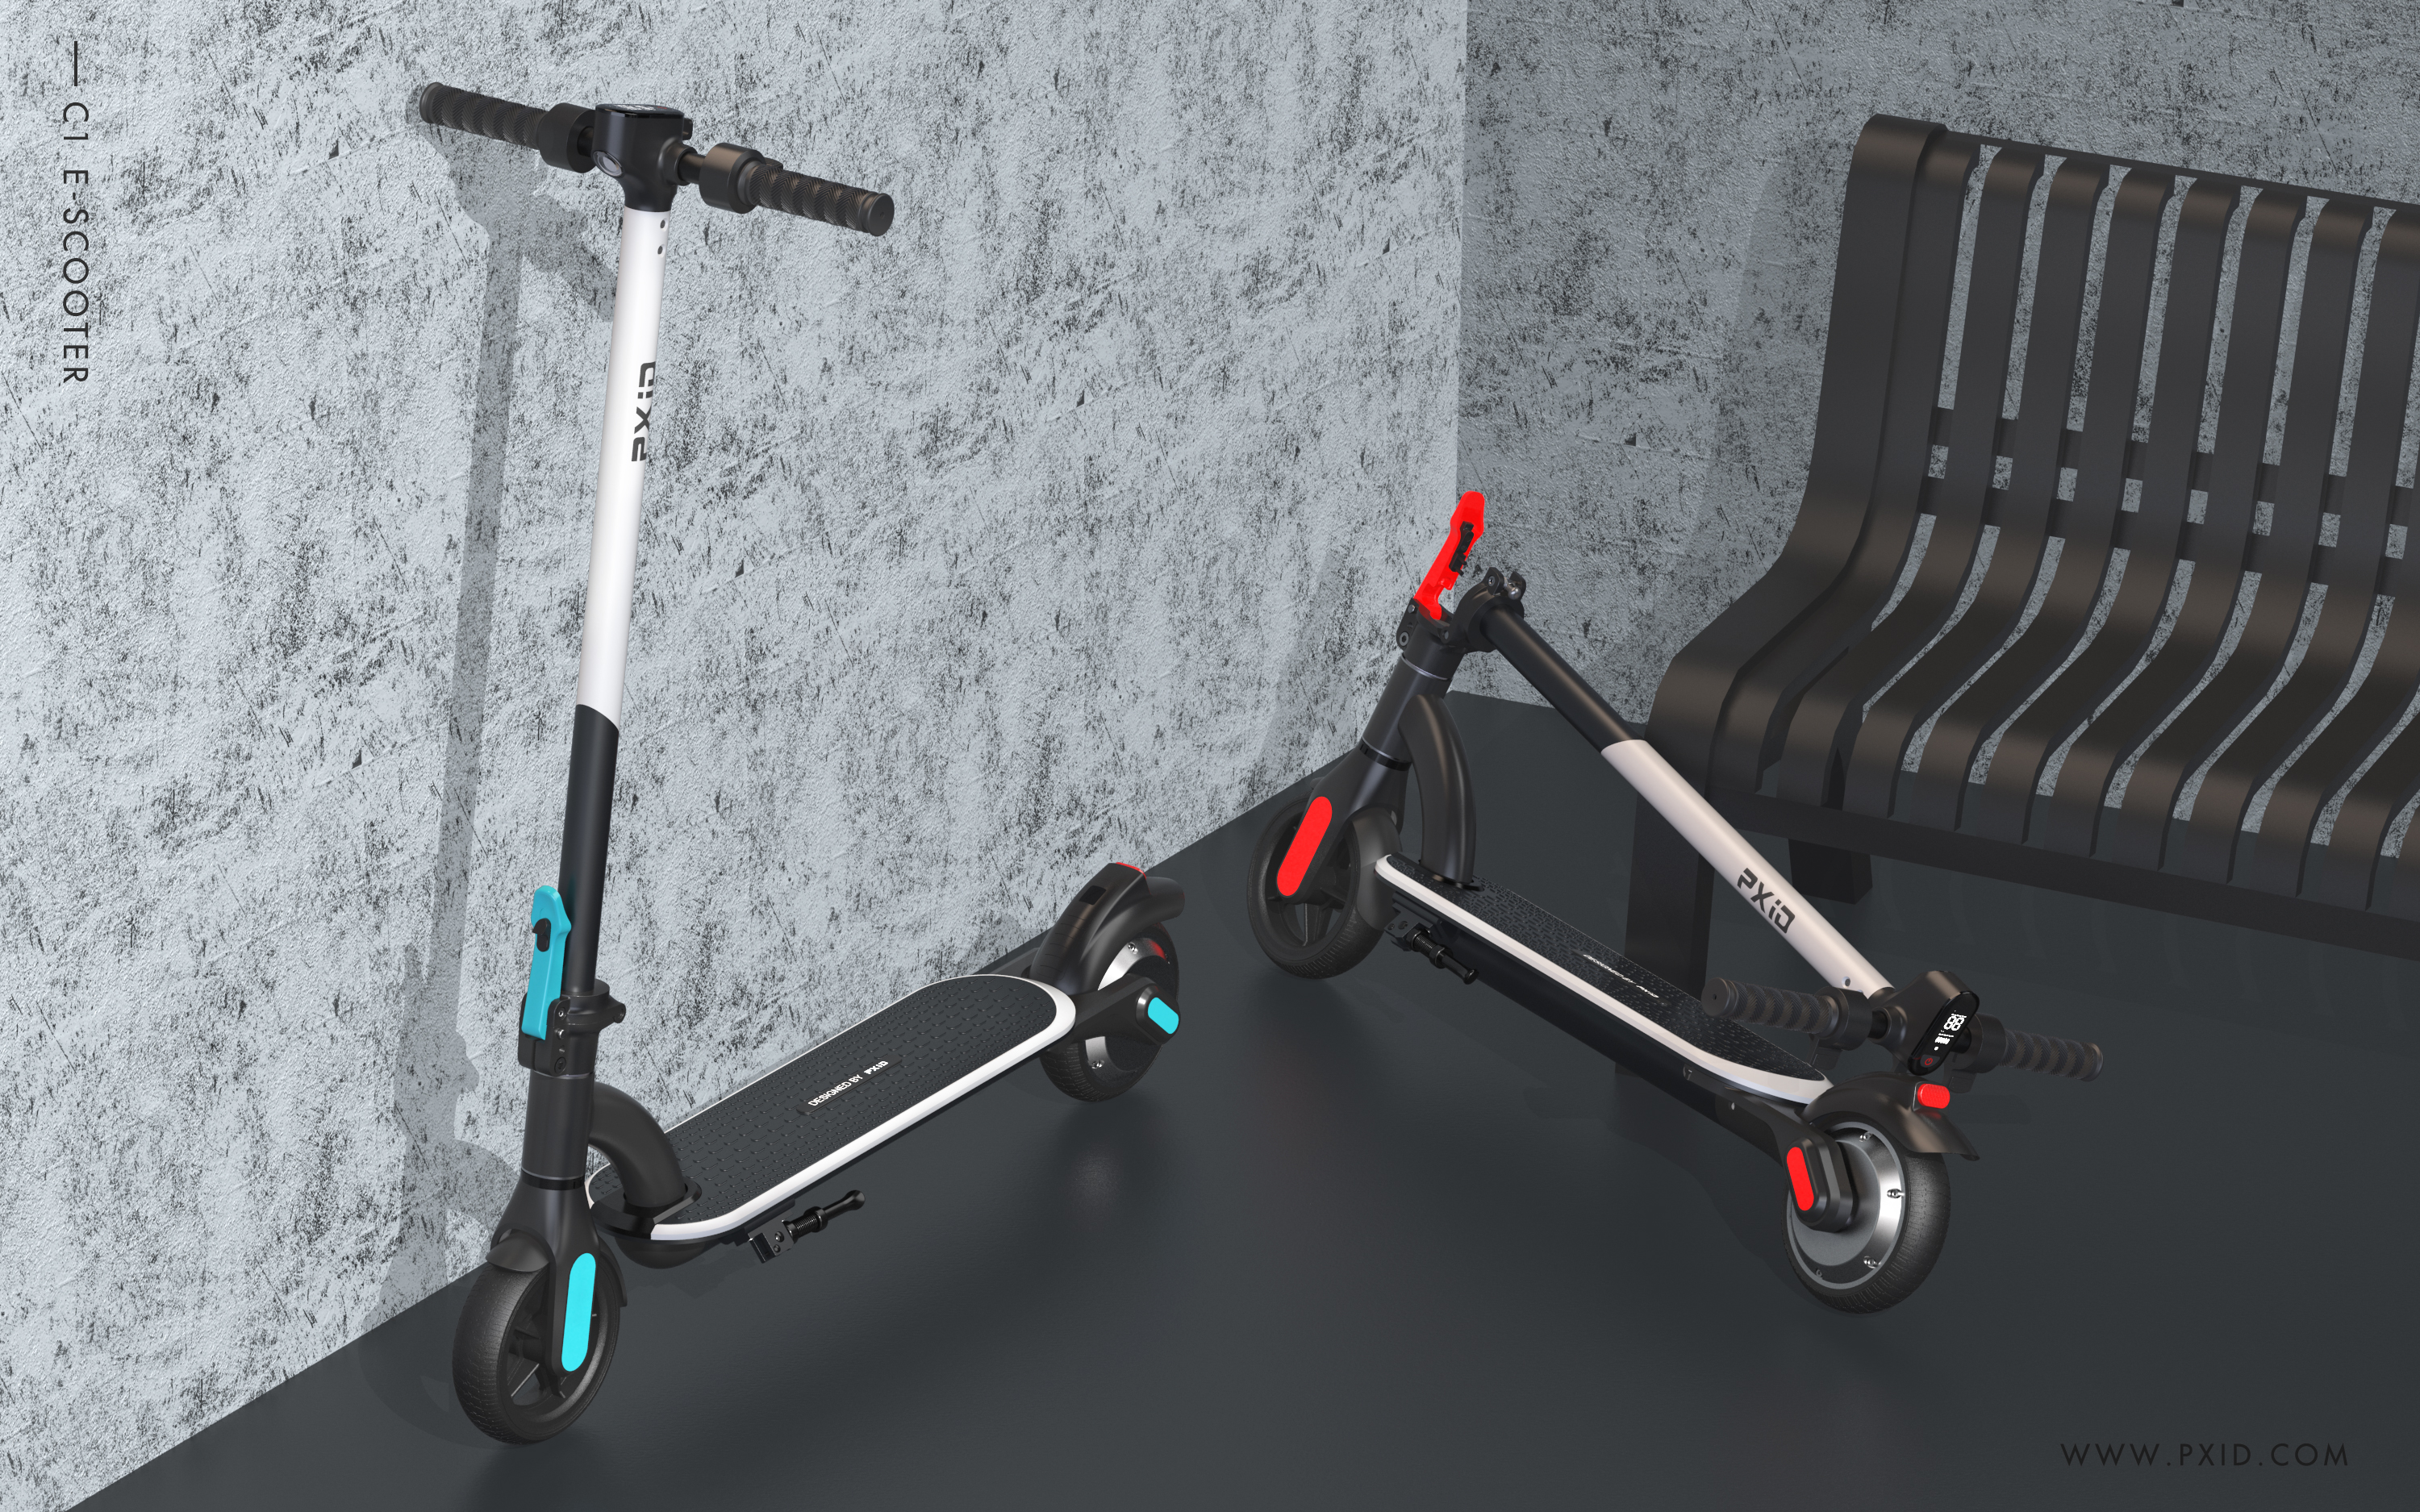 Lime, Dott and Tier won the license for the Paris scooter, leaving Bird at a loss in a key market